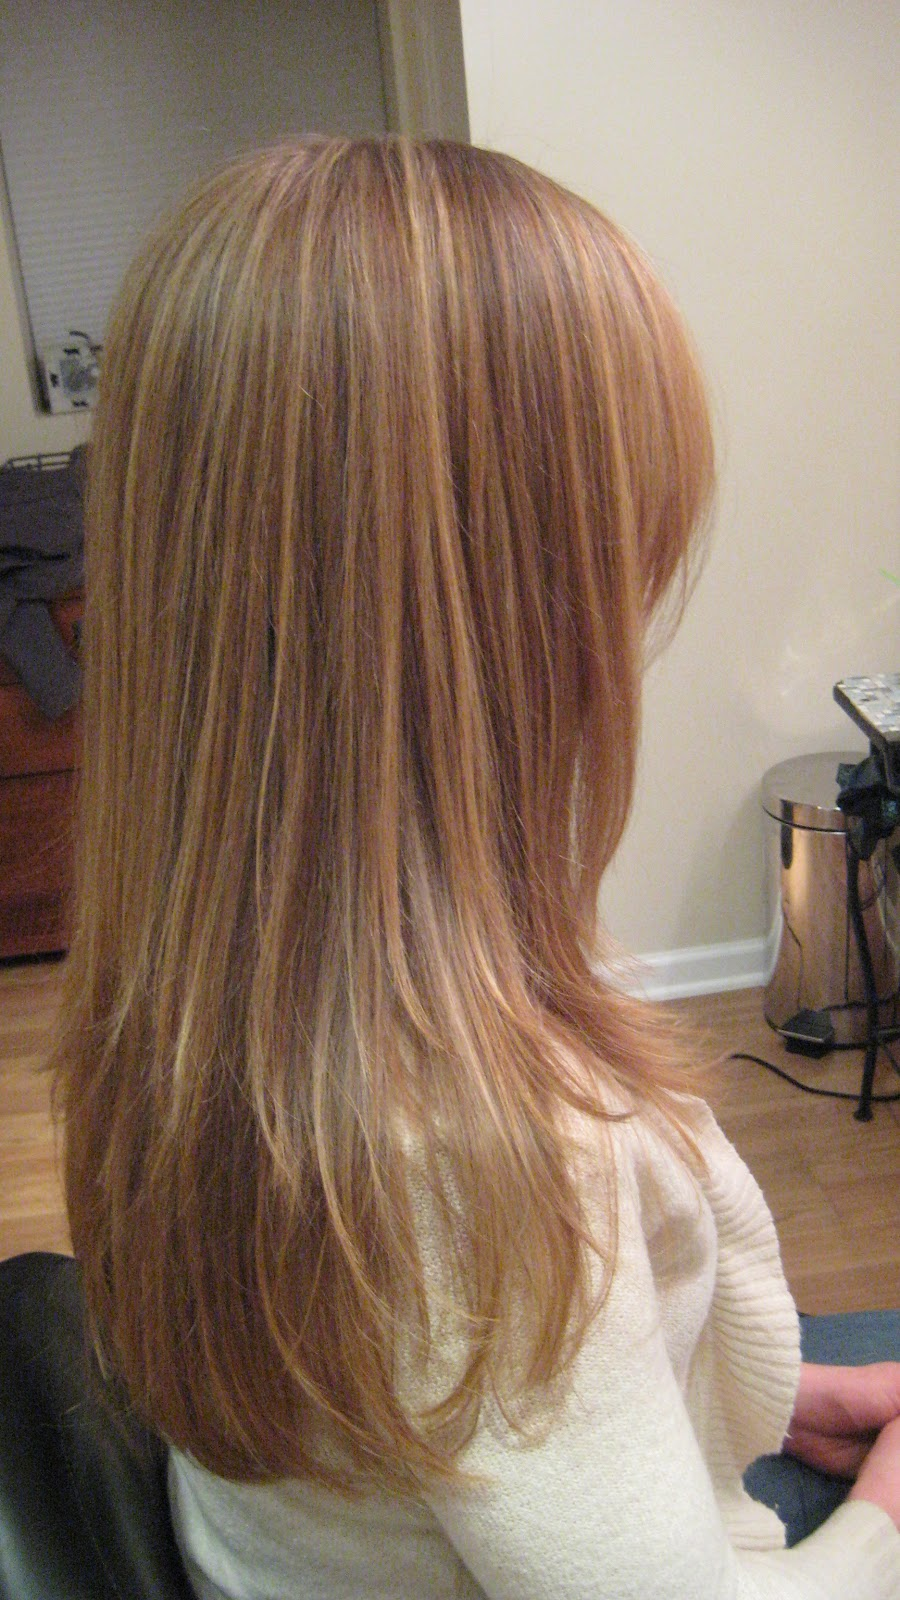 Hairstylist How To Red Hair With Blonde Highlights